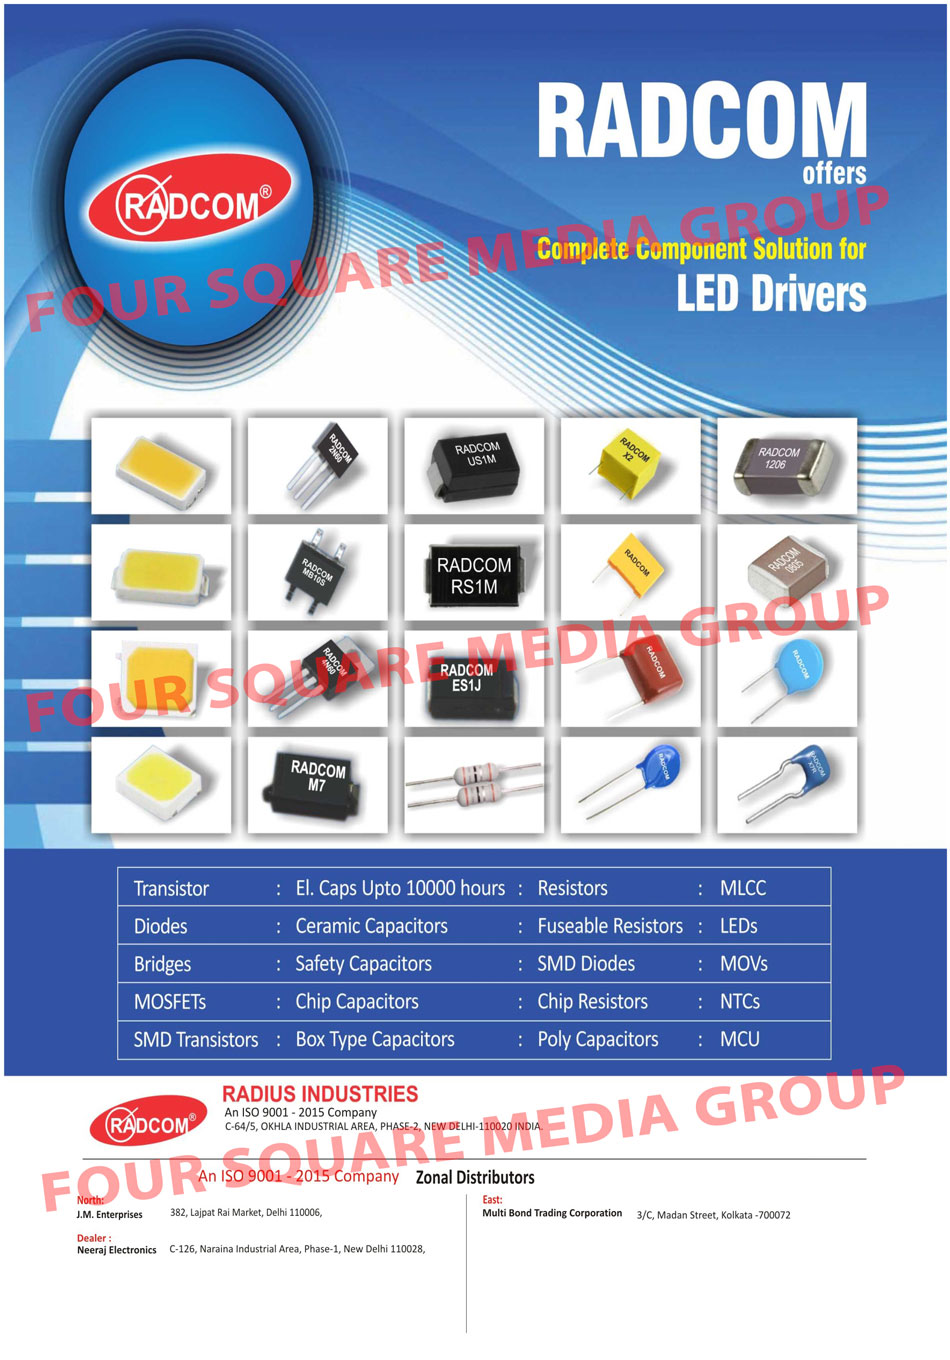 Led Drivers Components, Electronic Components, Capacitors, Diodes, LEDs, Transistors, Rectifiers, Bridges, Schottky, DIACS, Resistors, MOV, NTCs, Integrated Circuits, MOSFETs, SMD Transistors, Ceramic Capacitors, Safety Capacitors, Chip Capacitors, Box Type Capacitors, Fuseable Resistors, SMD Diodes, Chip Resistors, Poly Capacitors, MLCC, MCU, Electrolytic Capacitors, Public Address System Component Solutions, Power Transistors, Low Noise Audio Amplifier Transistors, Output Transistors, Integrated Circuits, Passive Components, Mobile Charger Components